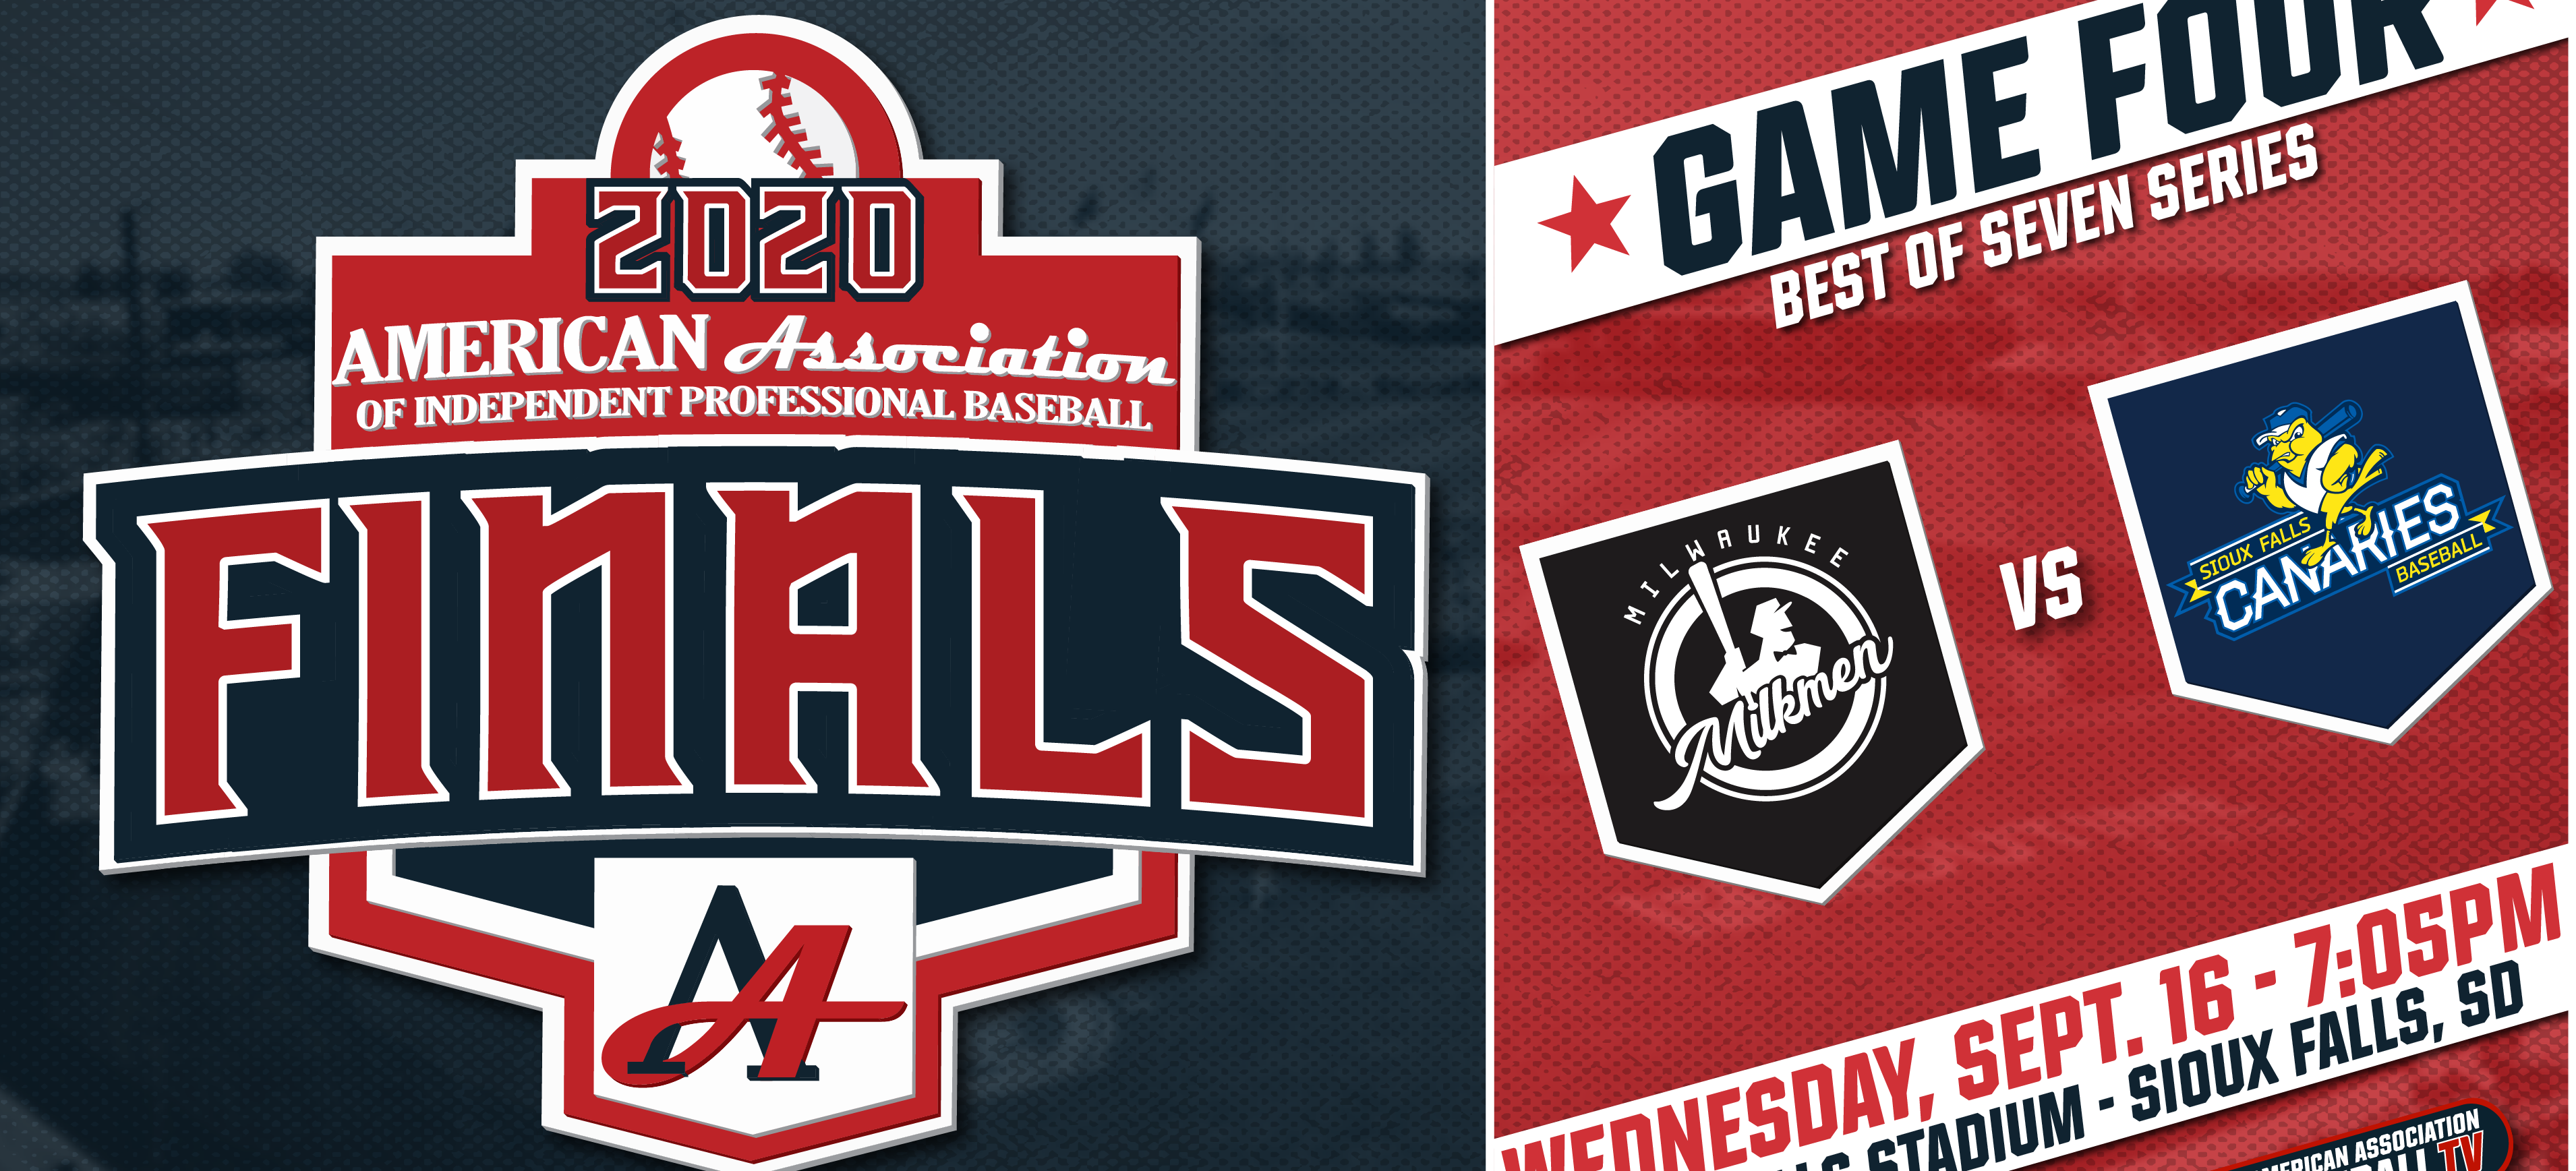 2020 Aa Finals Vimeo Live Game 4